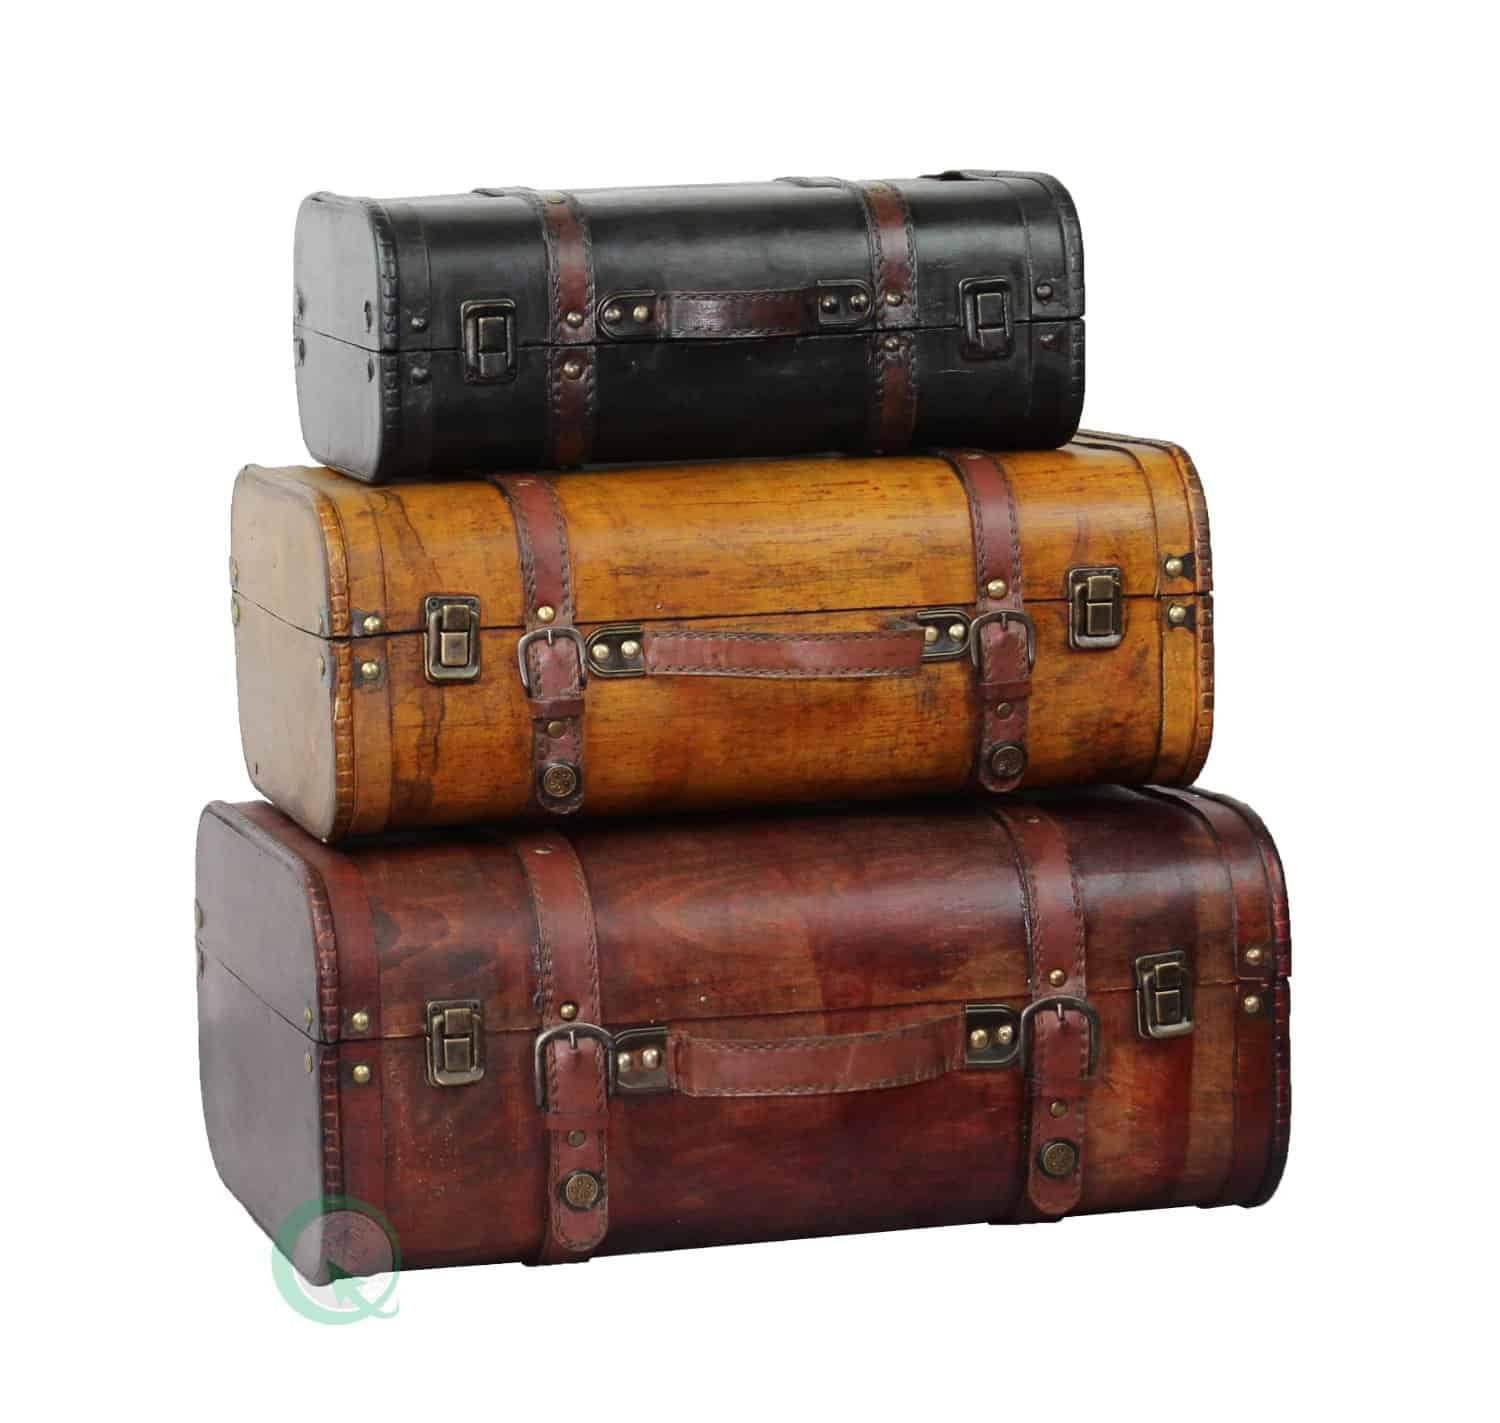 Vintage Decorative Suitcases 100 43 African Safari Home Decor Ideas Add Some Adventure